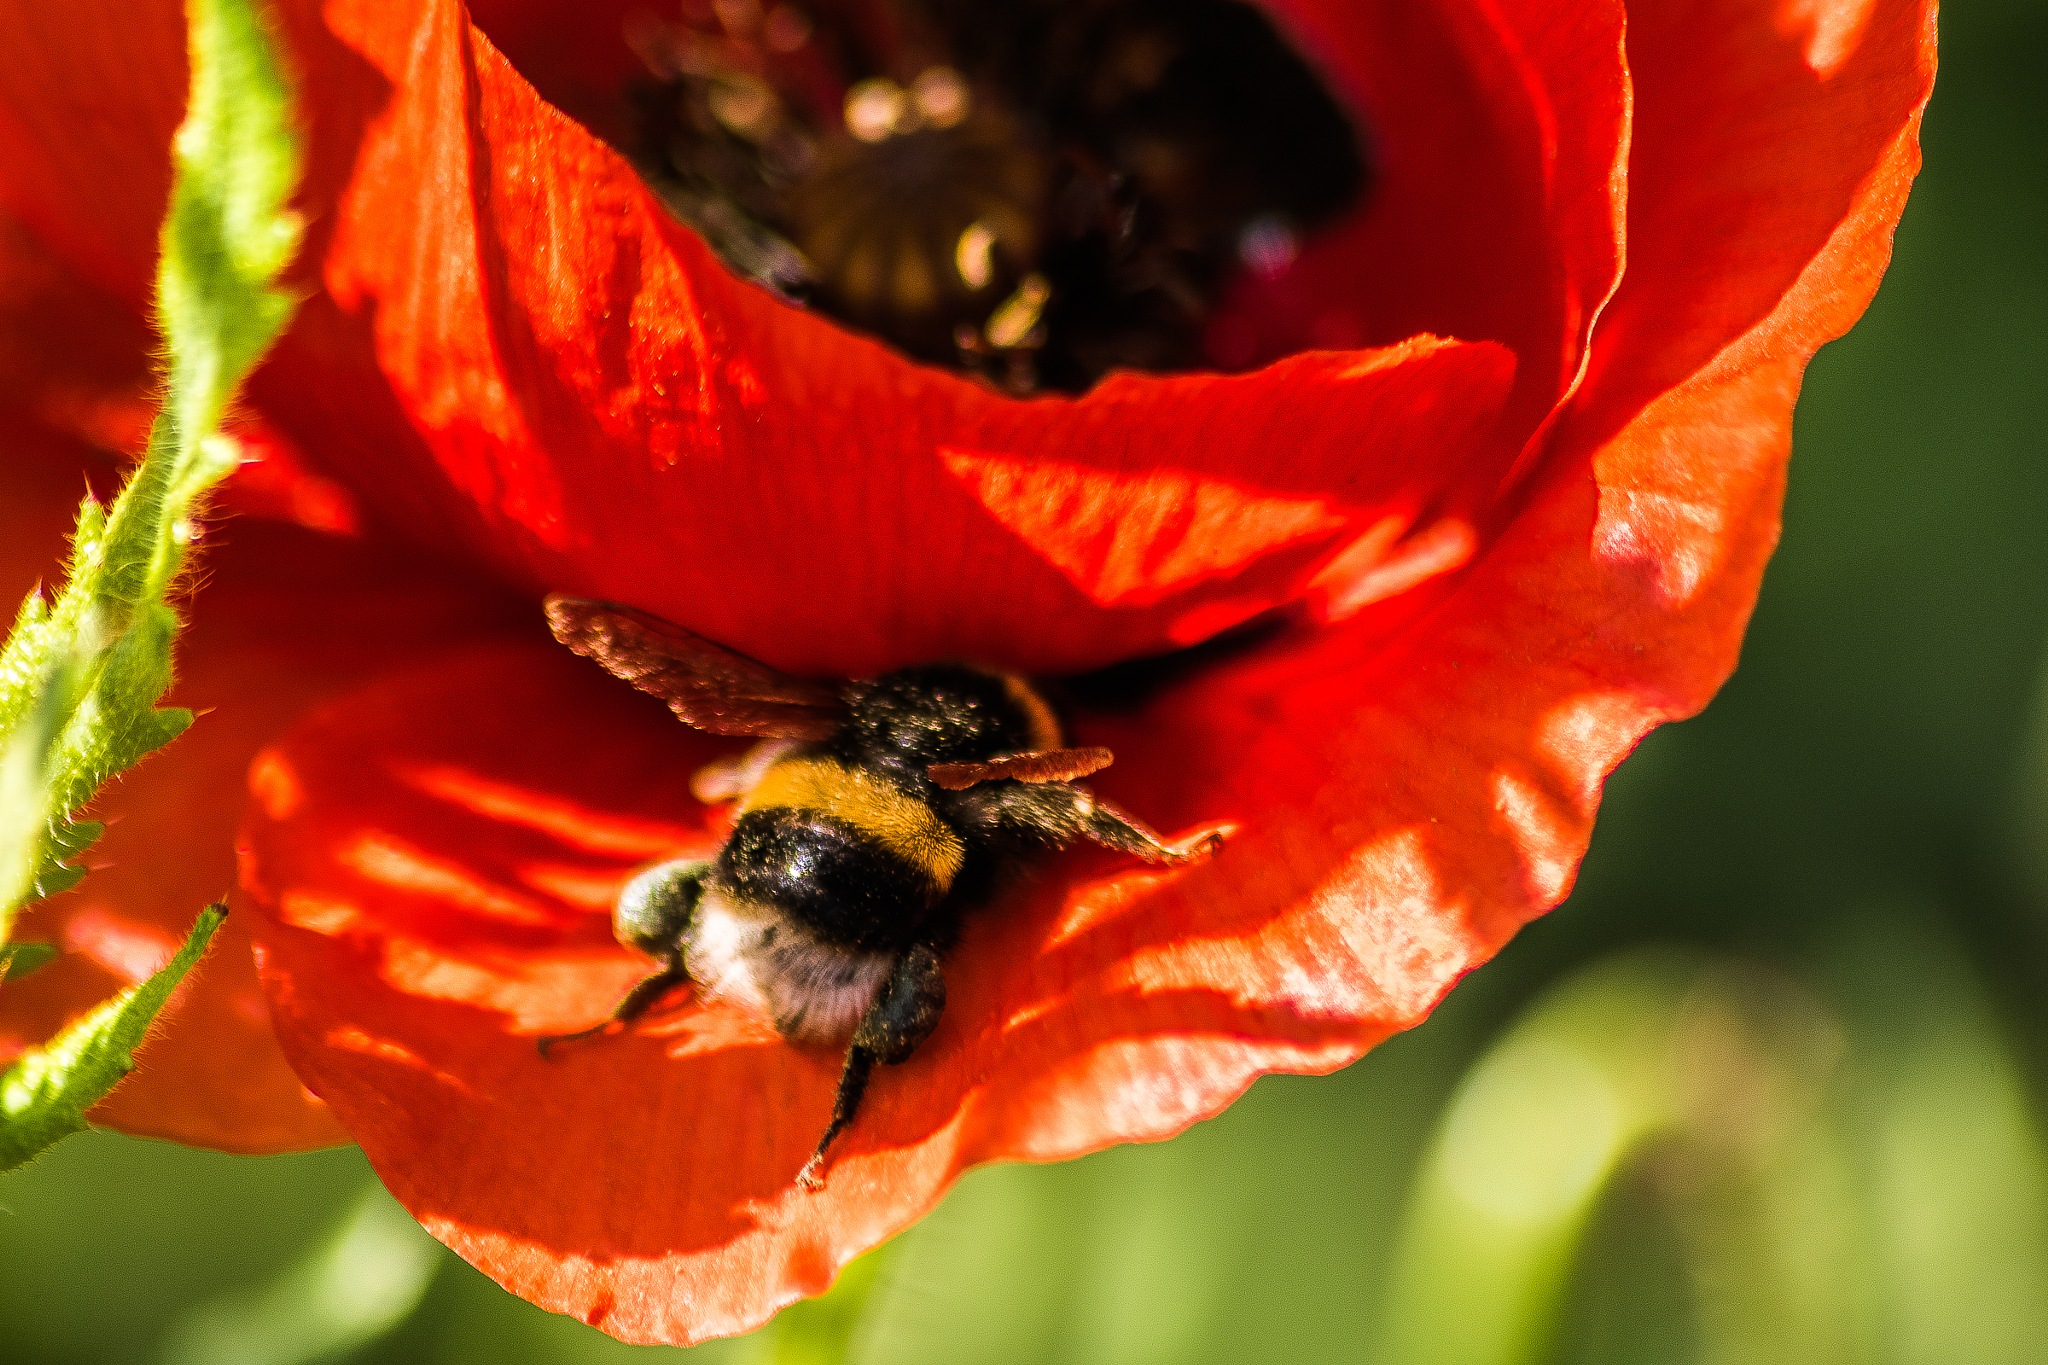 Bumbling Bumble Bee by madchickenwoman